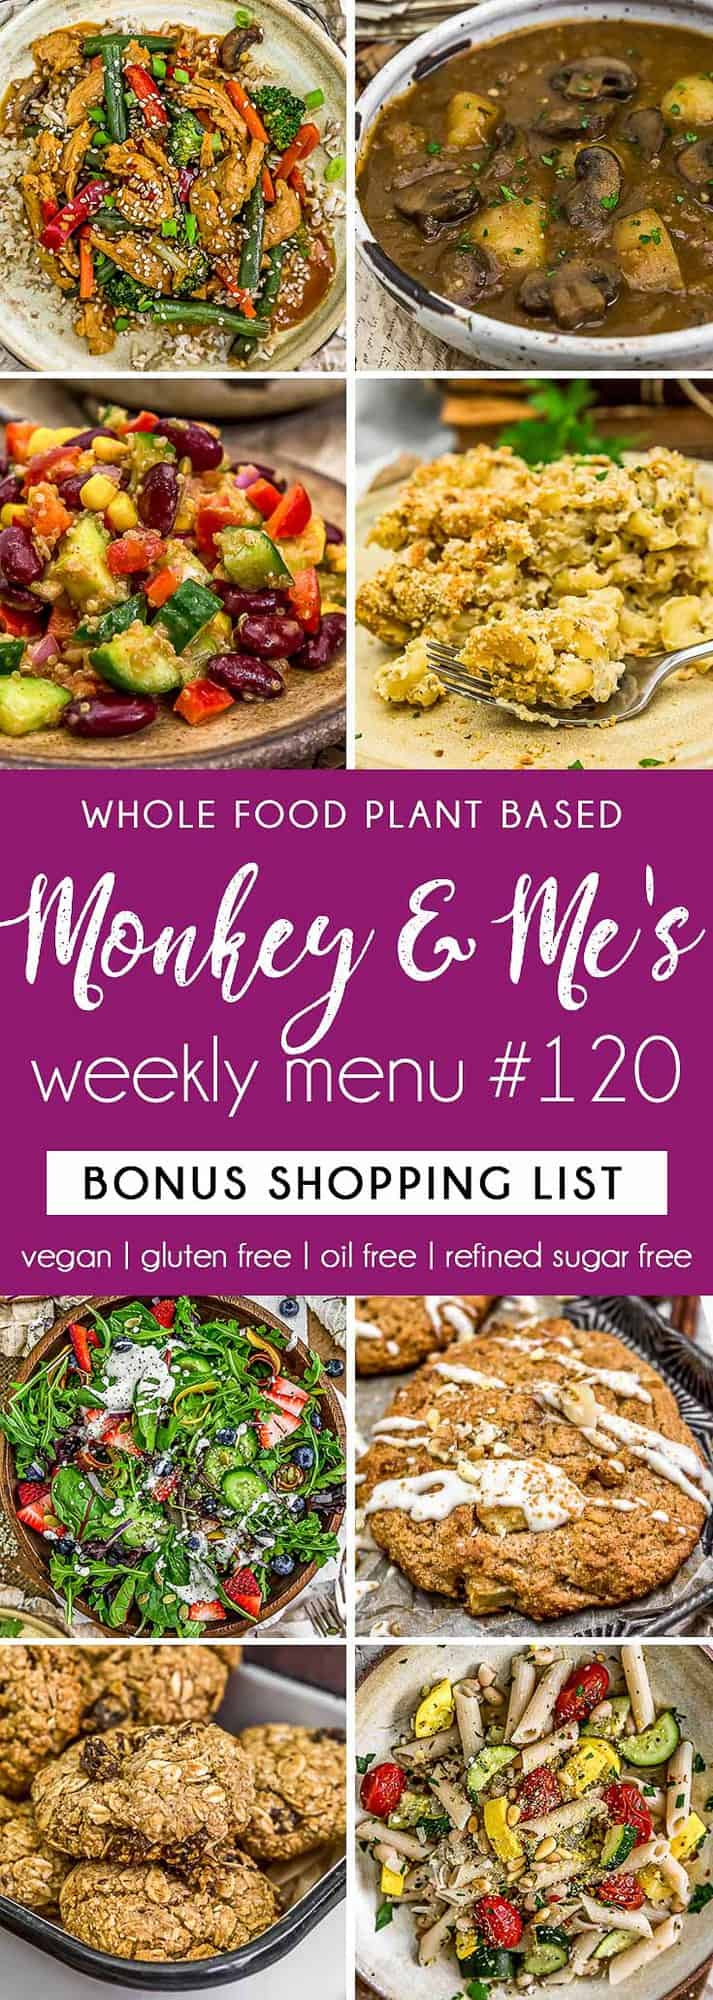 Monkey and Me's Menu 120 featuring 8 recipes